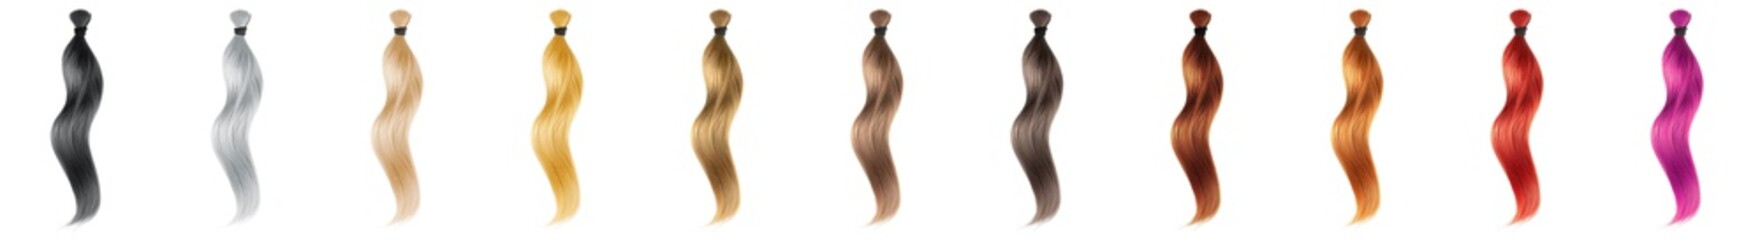 Papiers peints Salon de coiffure Collection various colors of hair on white background, isolated. Long wavy ponytail